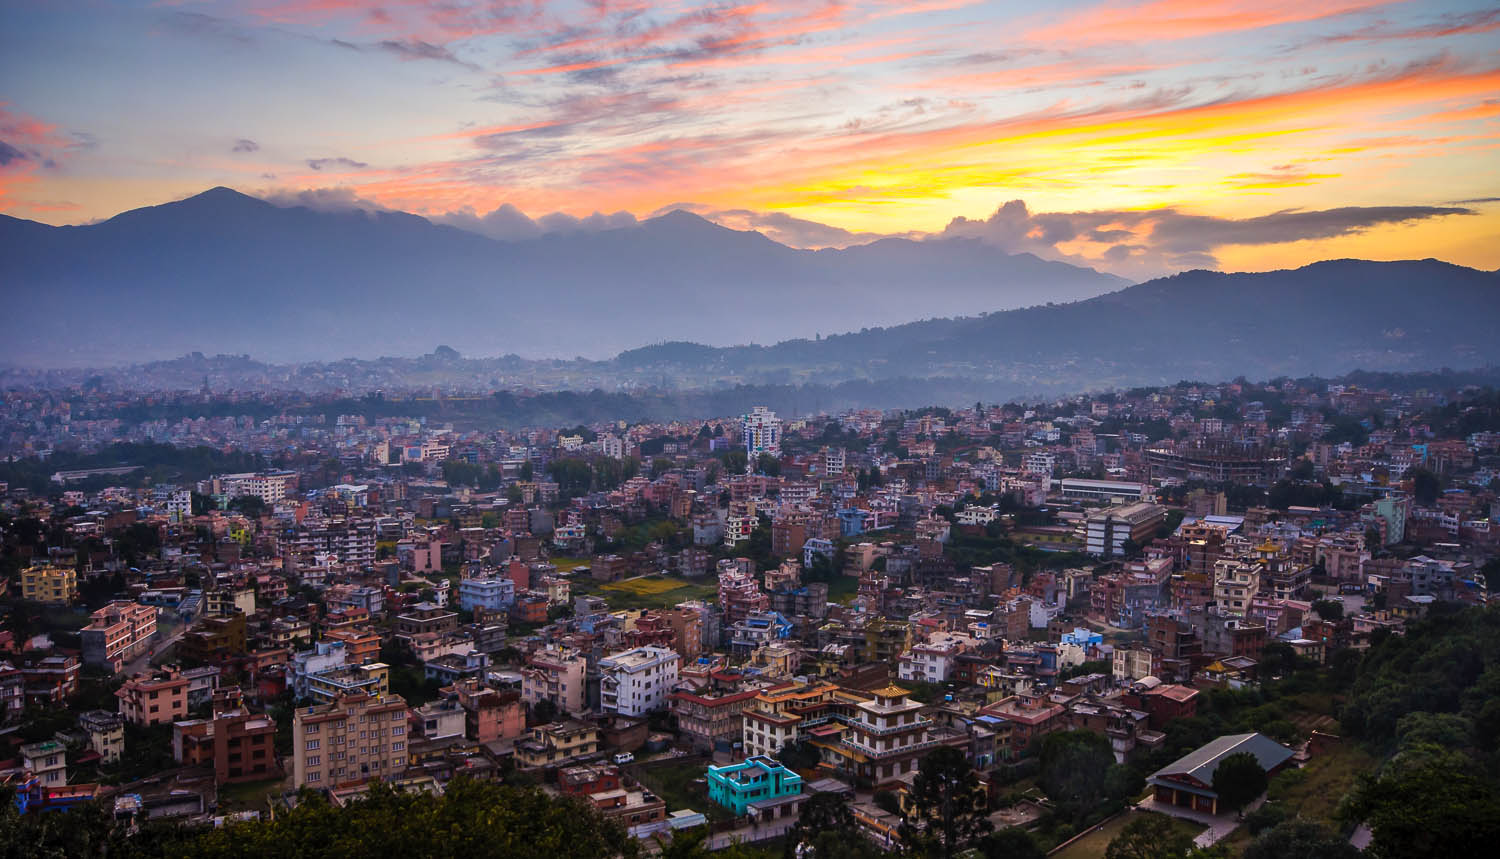 The picturesque but overpopulated Kathmandu Valley. Image:     Burachet